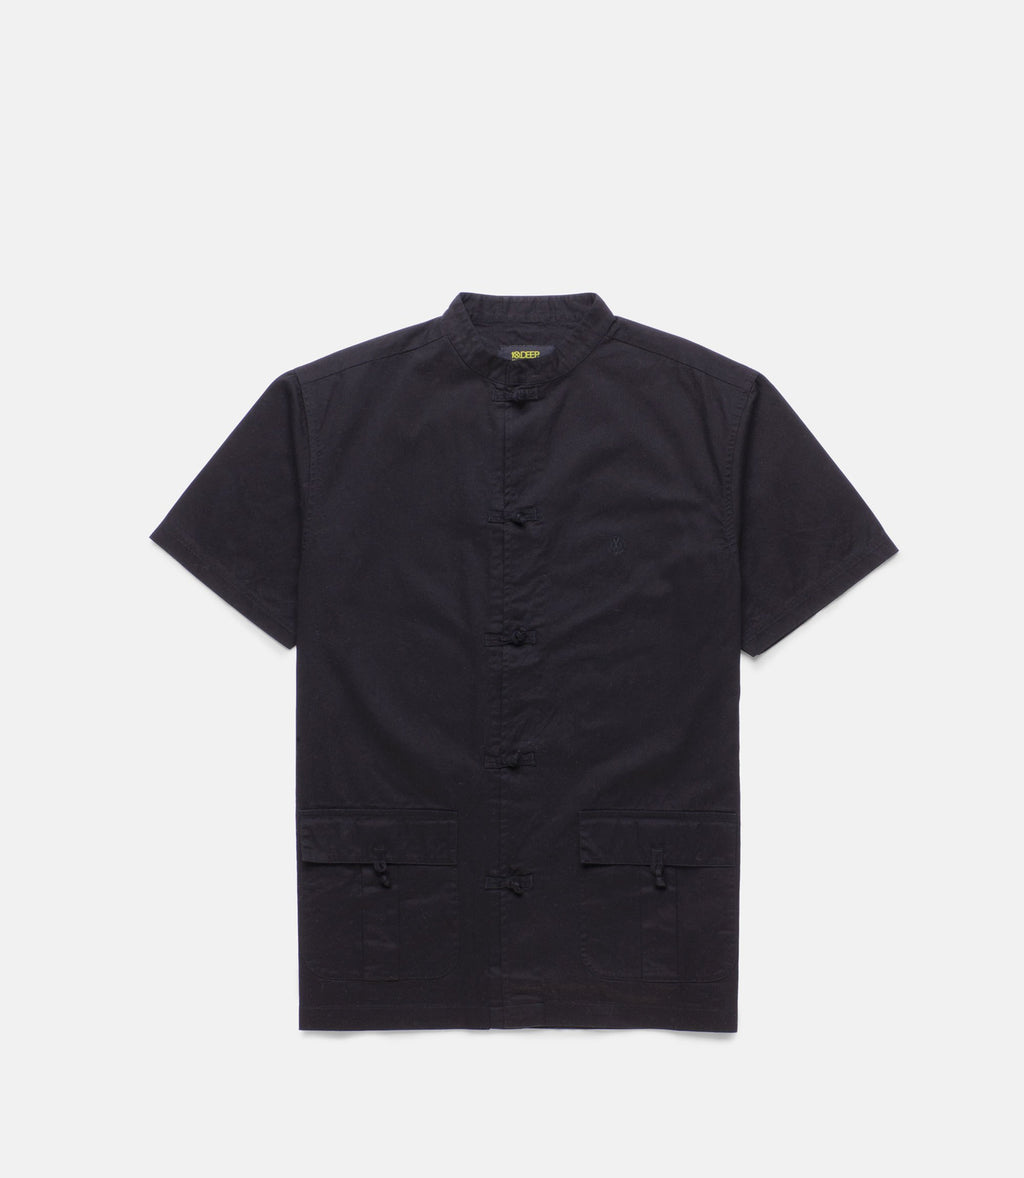 10Deep - Bonzai S/S Men's Work Shirt, Black - The Giant Peach